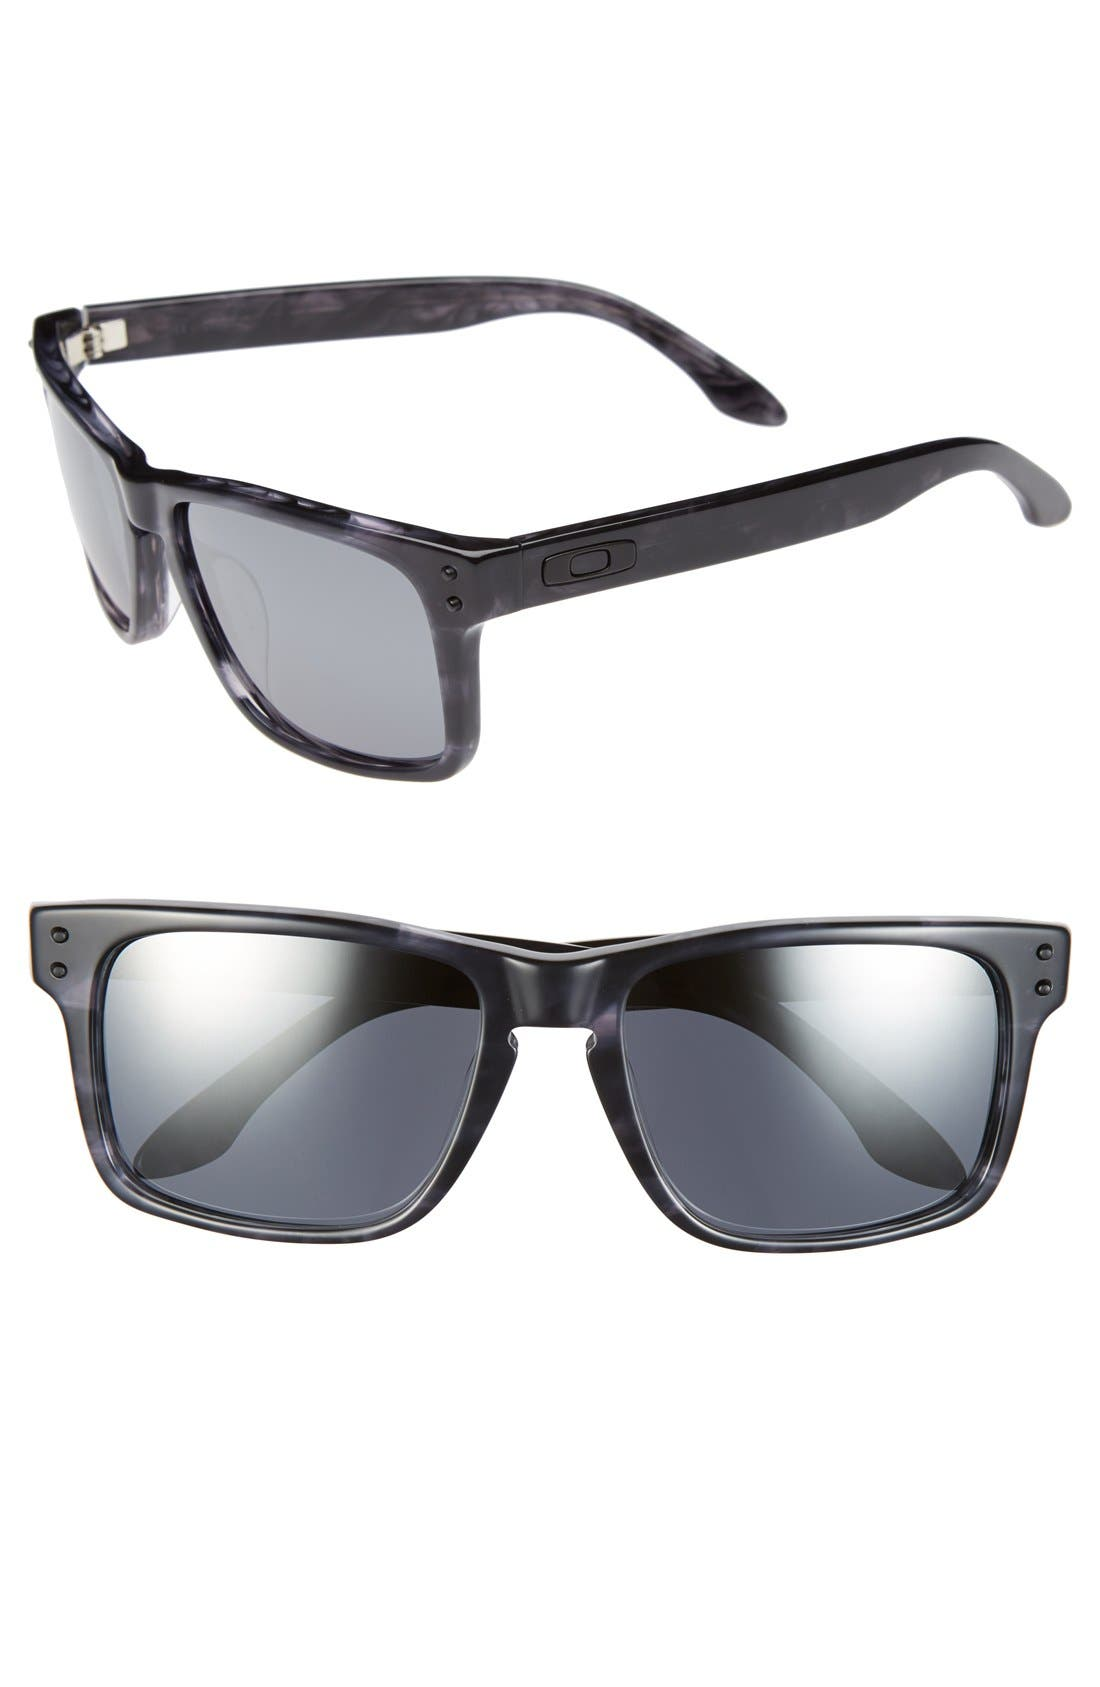 Main Image - Oakley 'Holbrook LX' 56mm Sunglasses